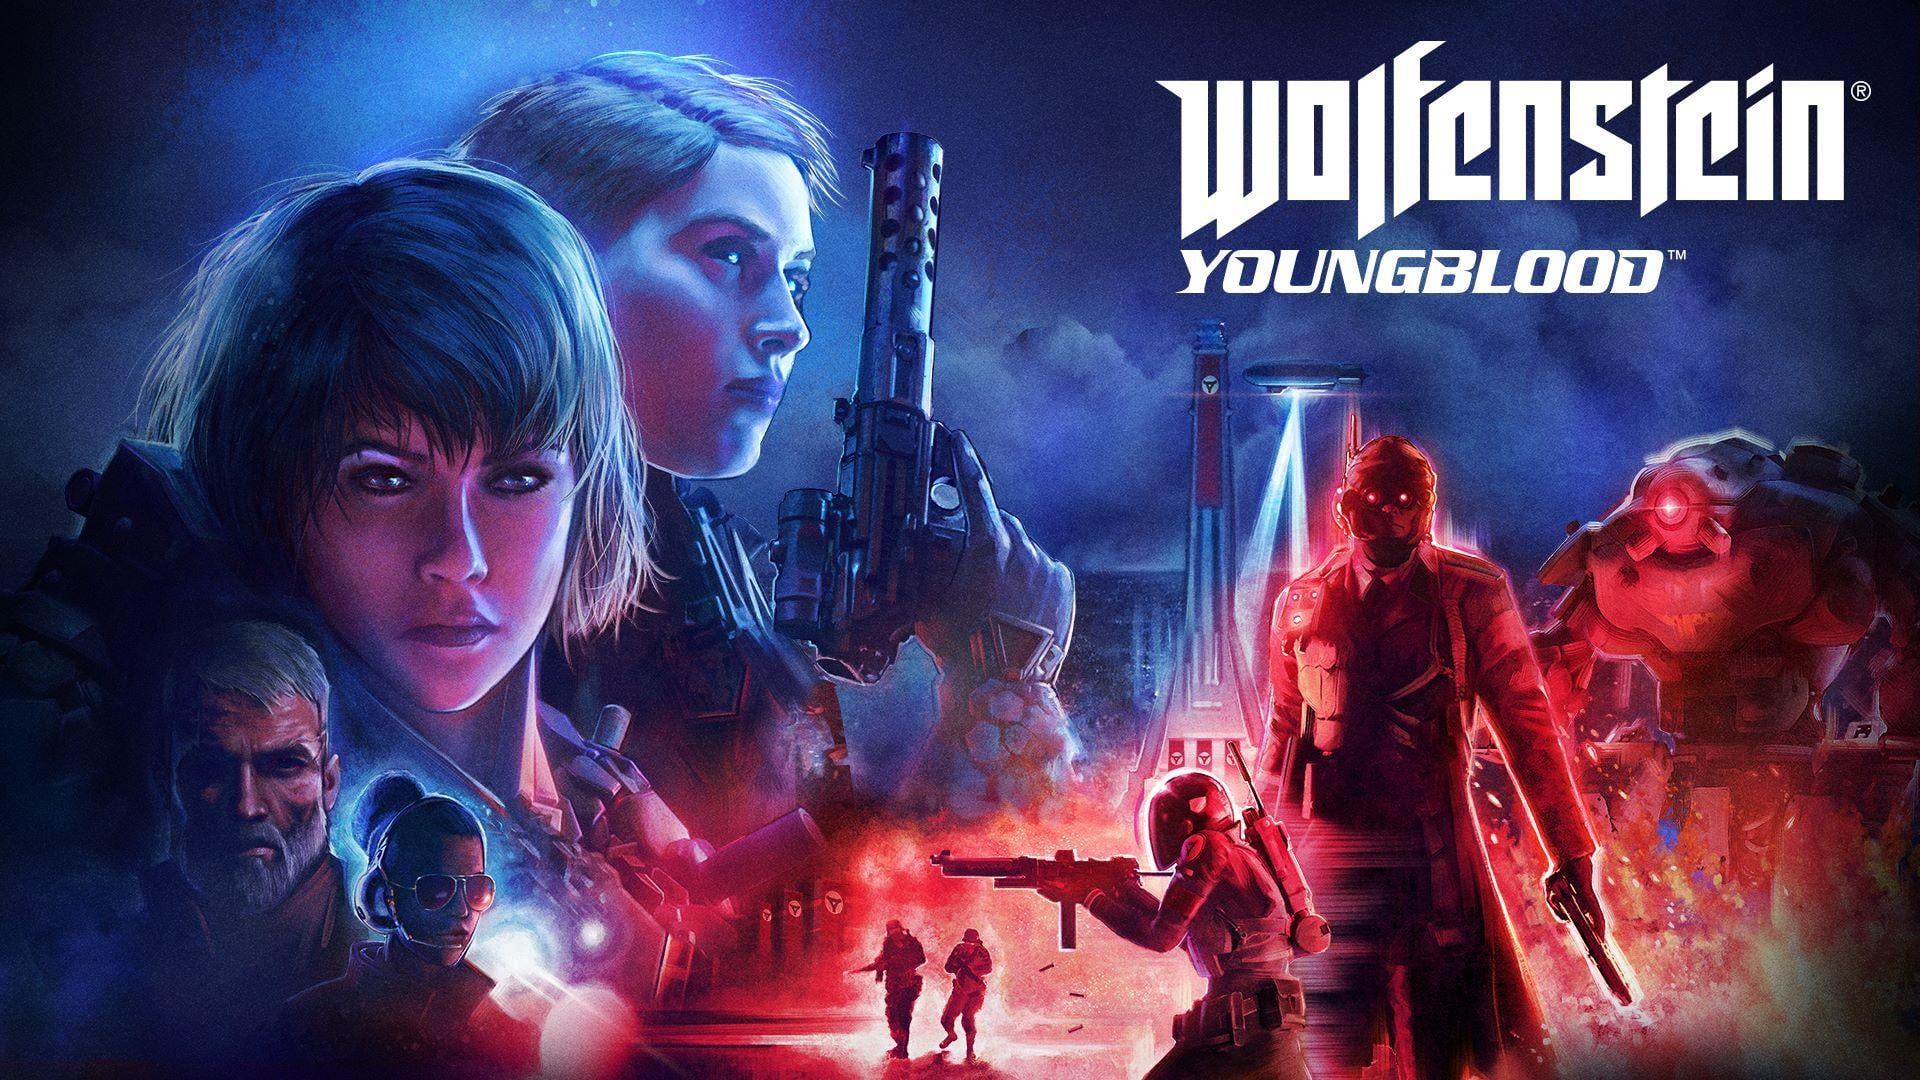 When does Wolfenstein: Youngblood release?